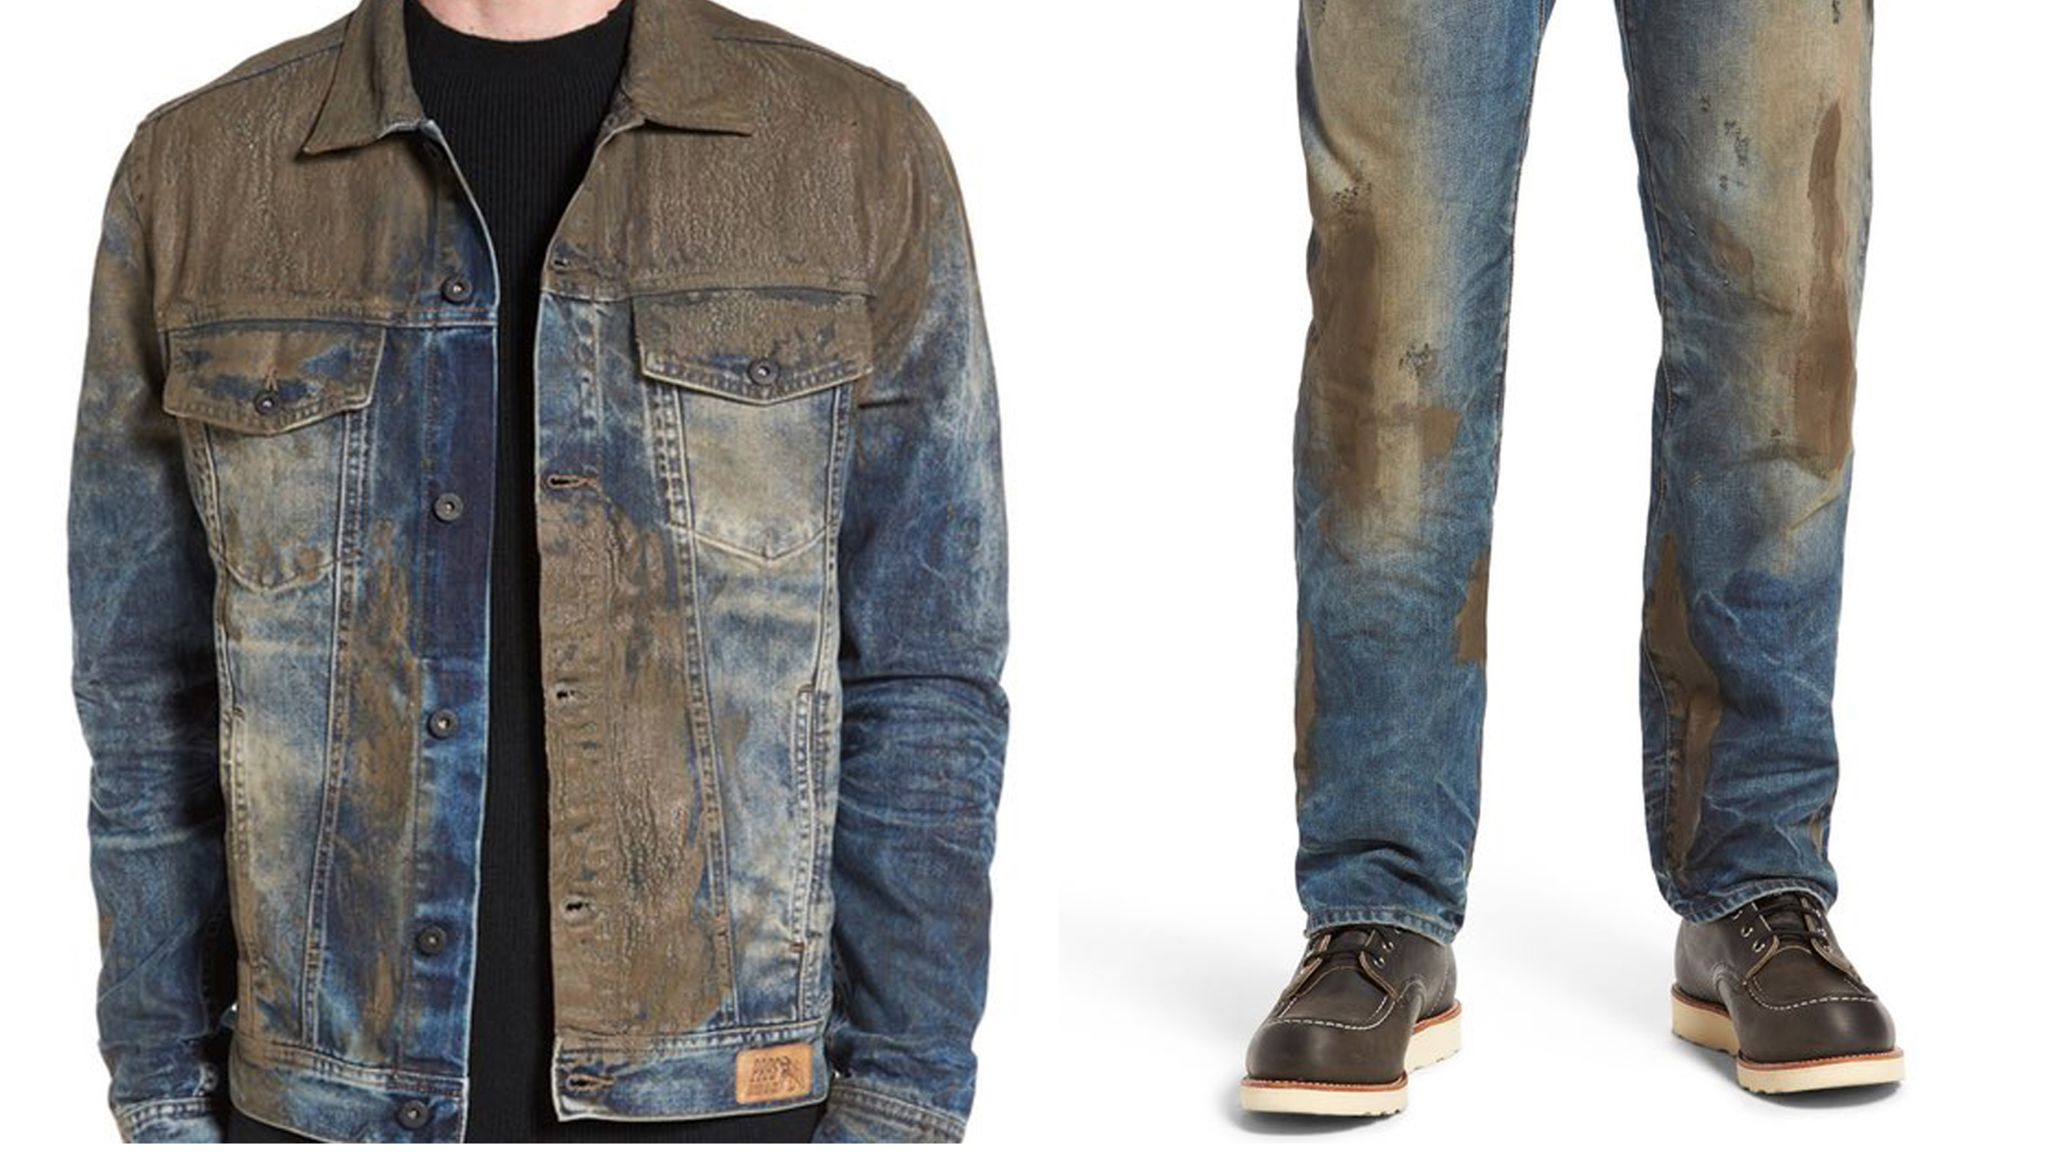 Muddy Men S Jeans On Sale For 330 At Nordstrom In Us World News Sky News